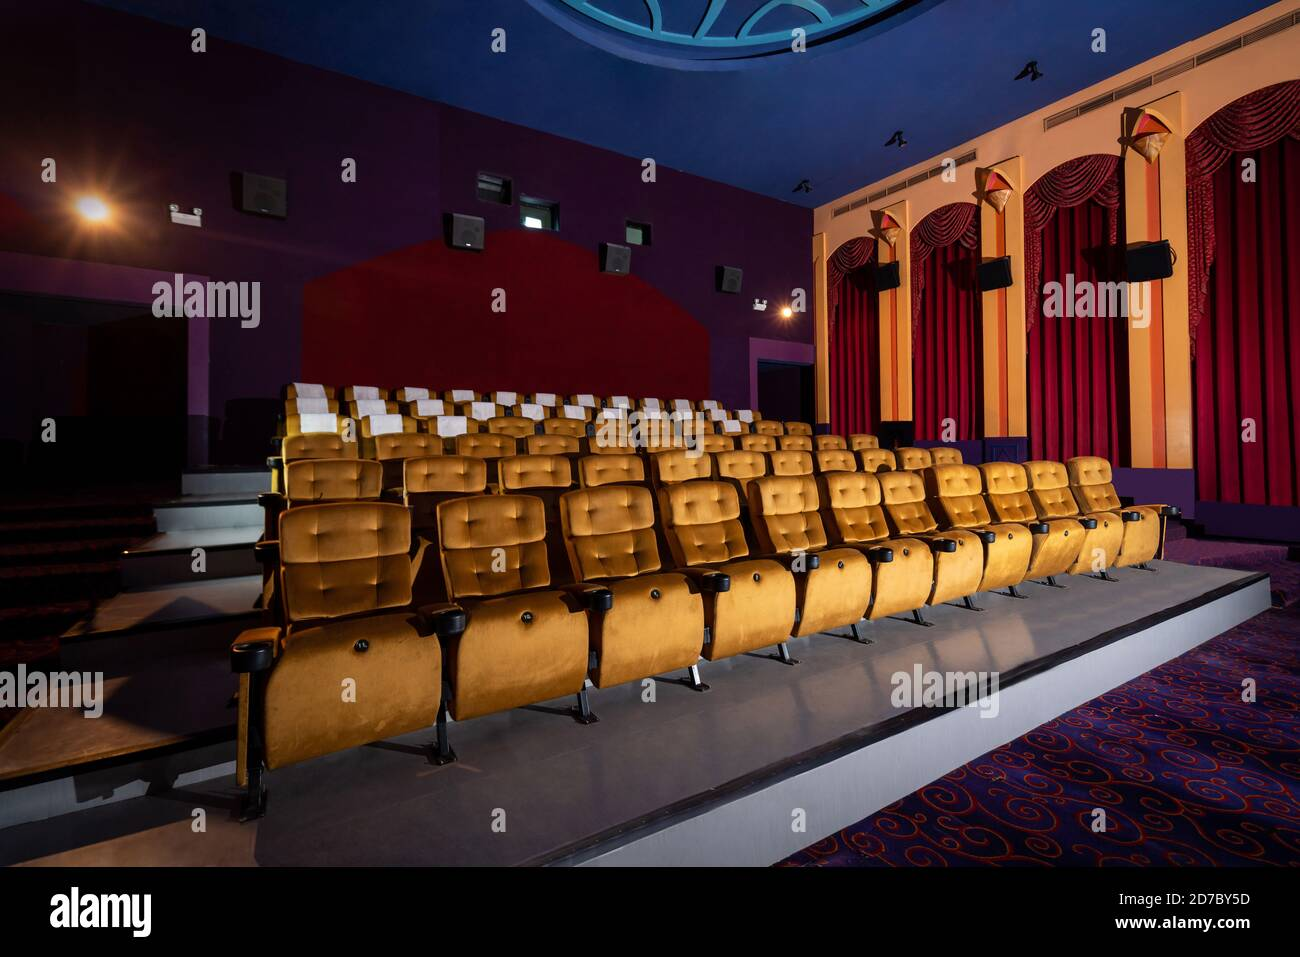 Large cinema theater interior with seat rows for audience to sit in movie theater premiere by cinematograph projector. The cinema theater is decorated Stock Photo